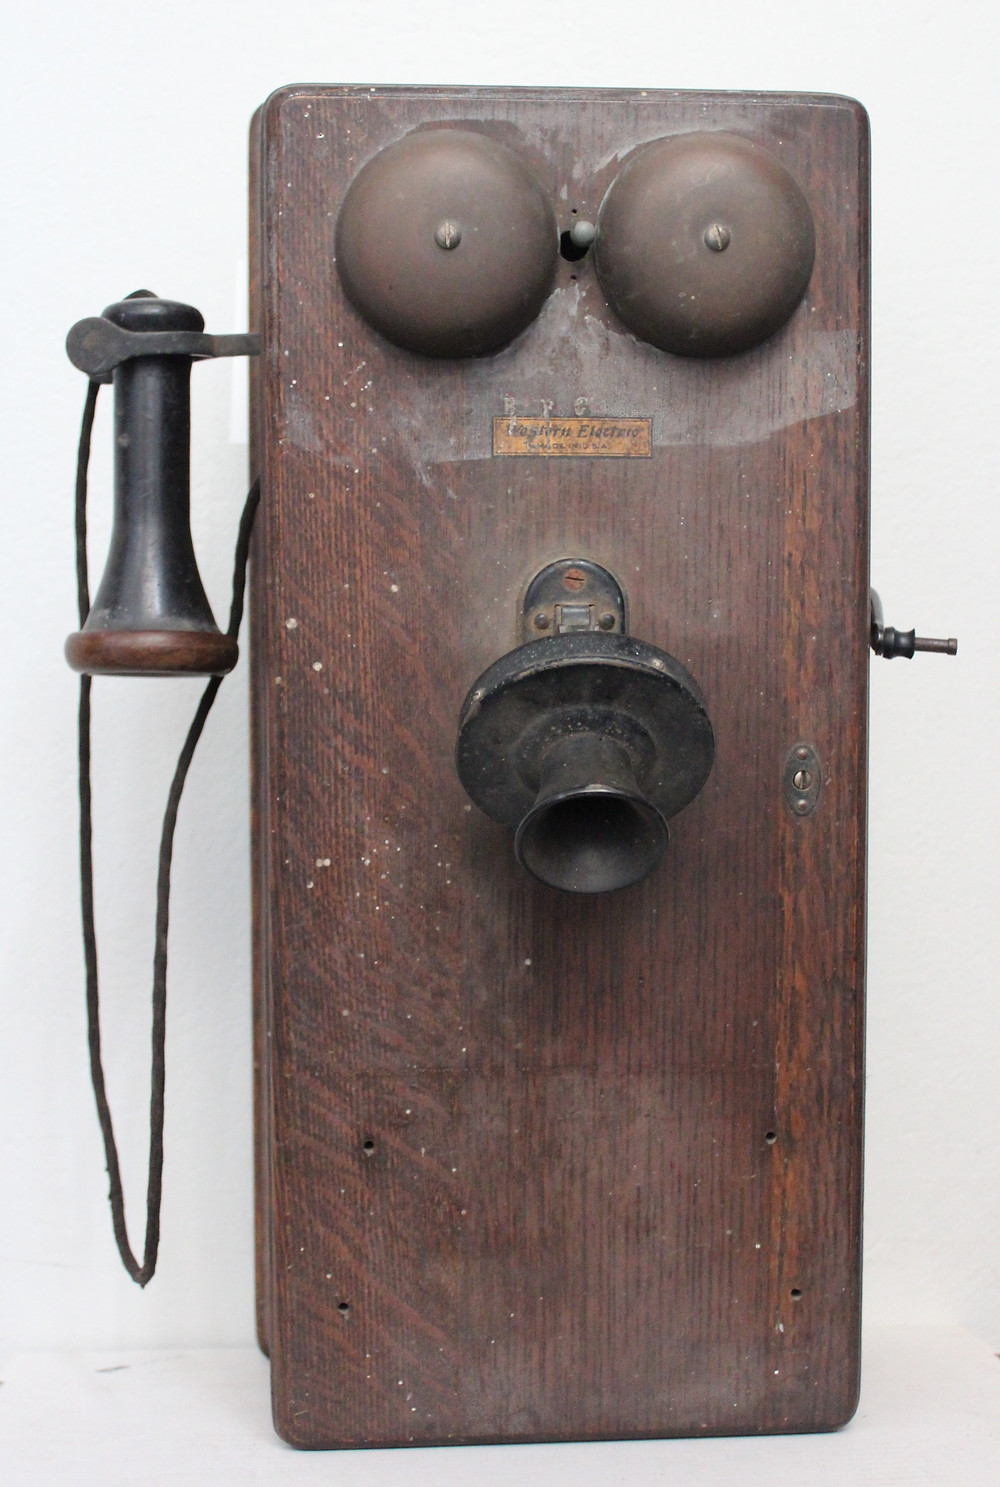 The Western Electric wall telephone from the Museum's collection